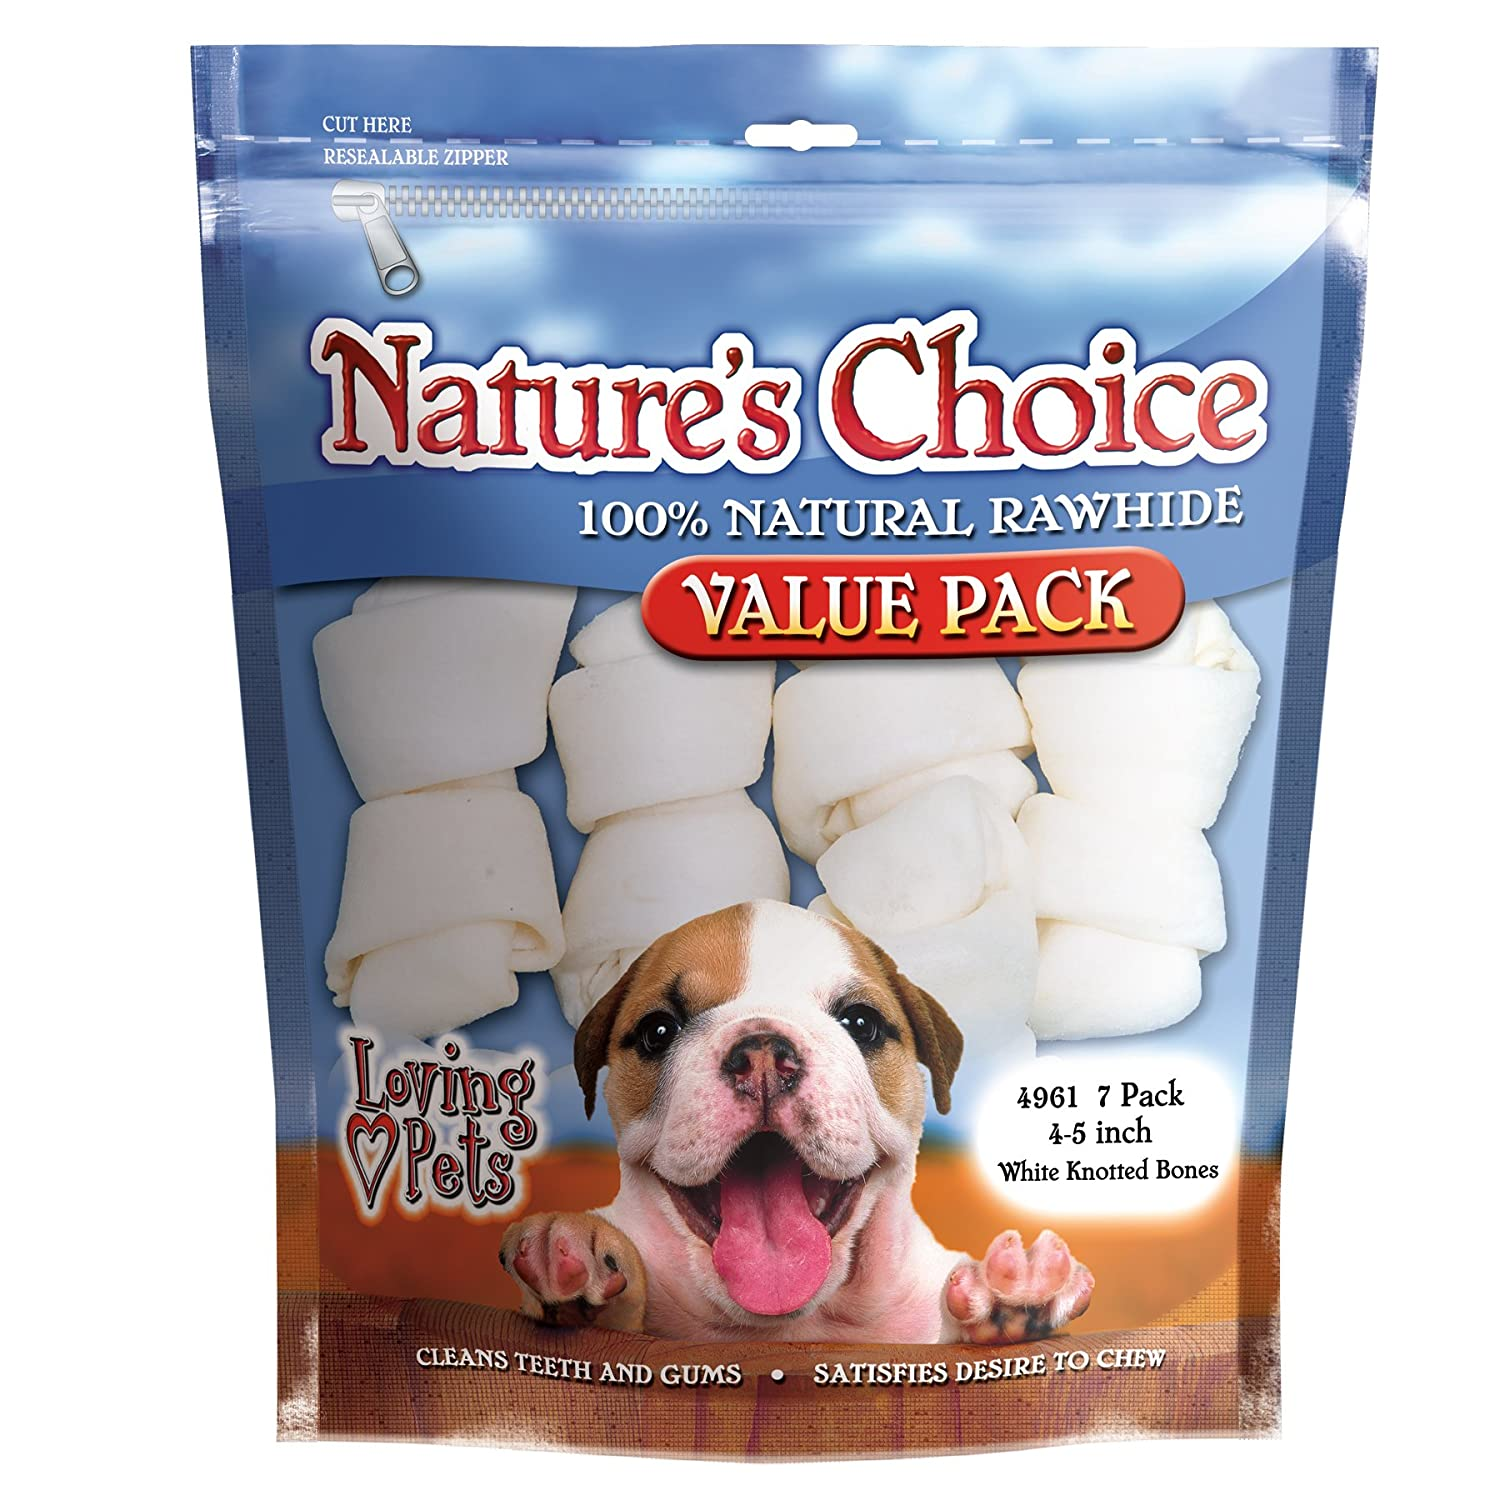 Loving Pets Nature's Choice 100-Percent Natural Rawhide White Knotted Bones Value Pack Dog Treat 4-5-Inches 7 Pack